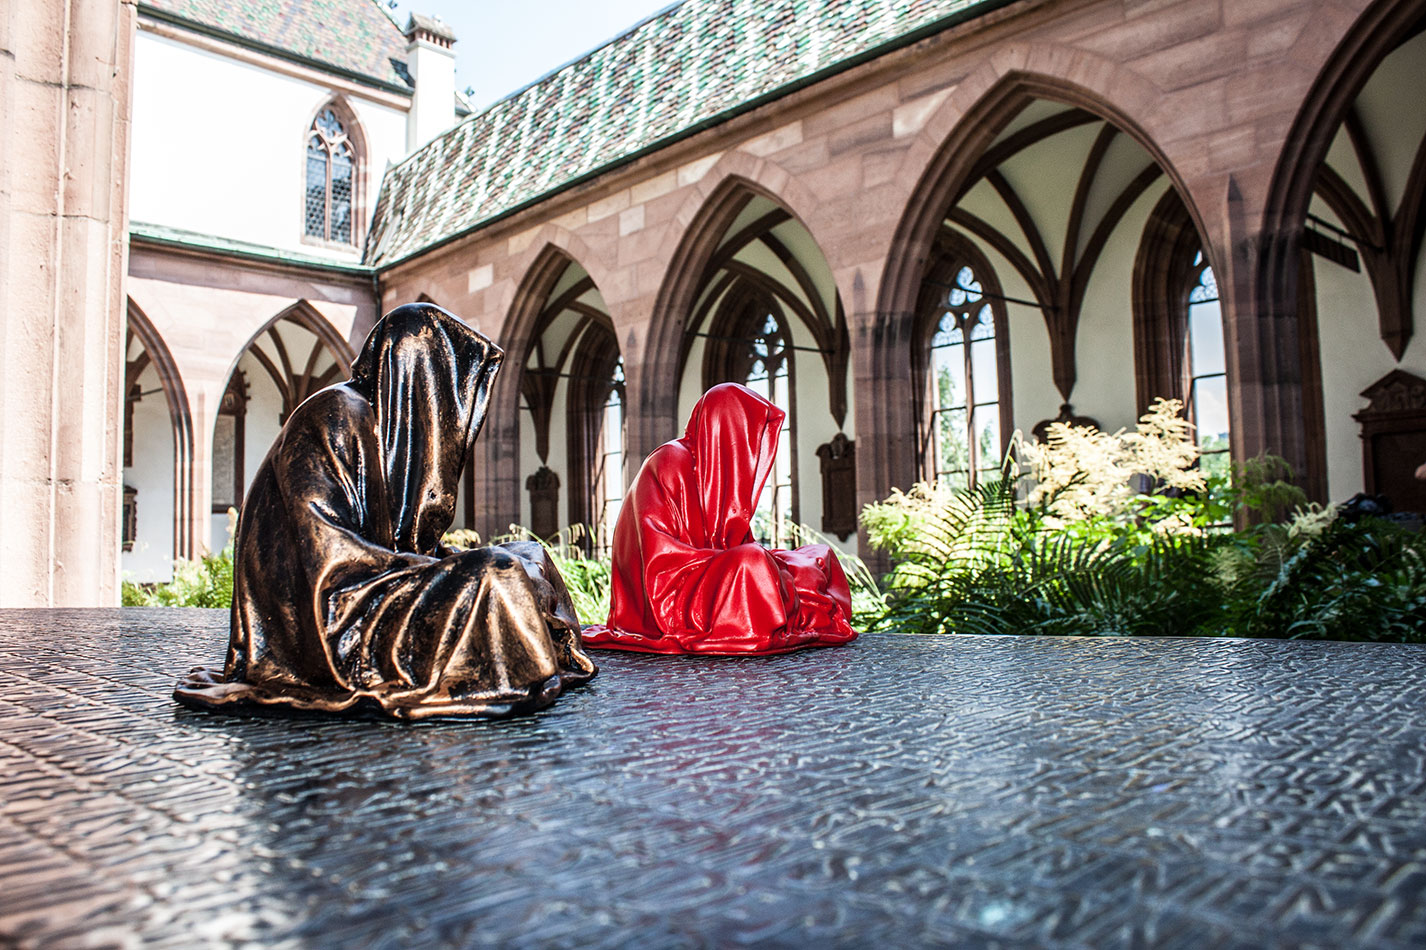 highlights-public-artbasel-scope-art-show-guardians-of-time-manfred-kielnhofer-steinreich-contemporary-art-sculpture-tour-art-parcours-1529y